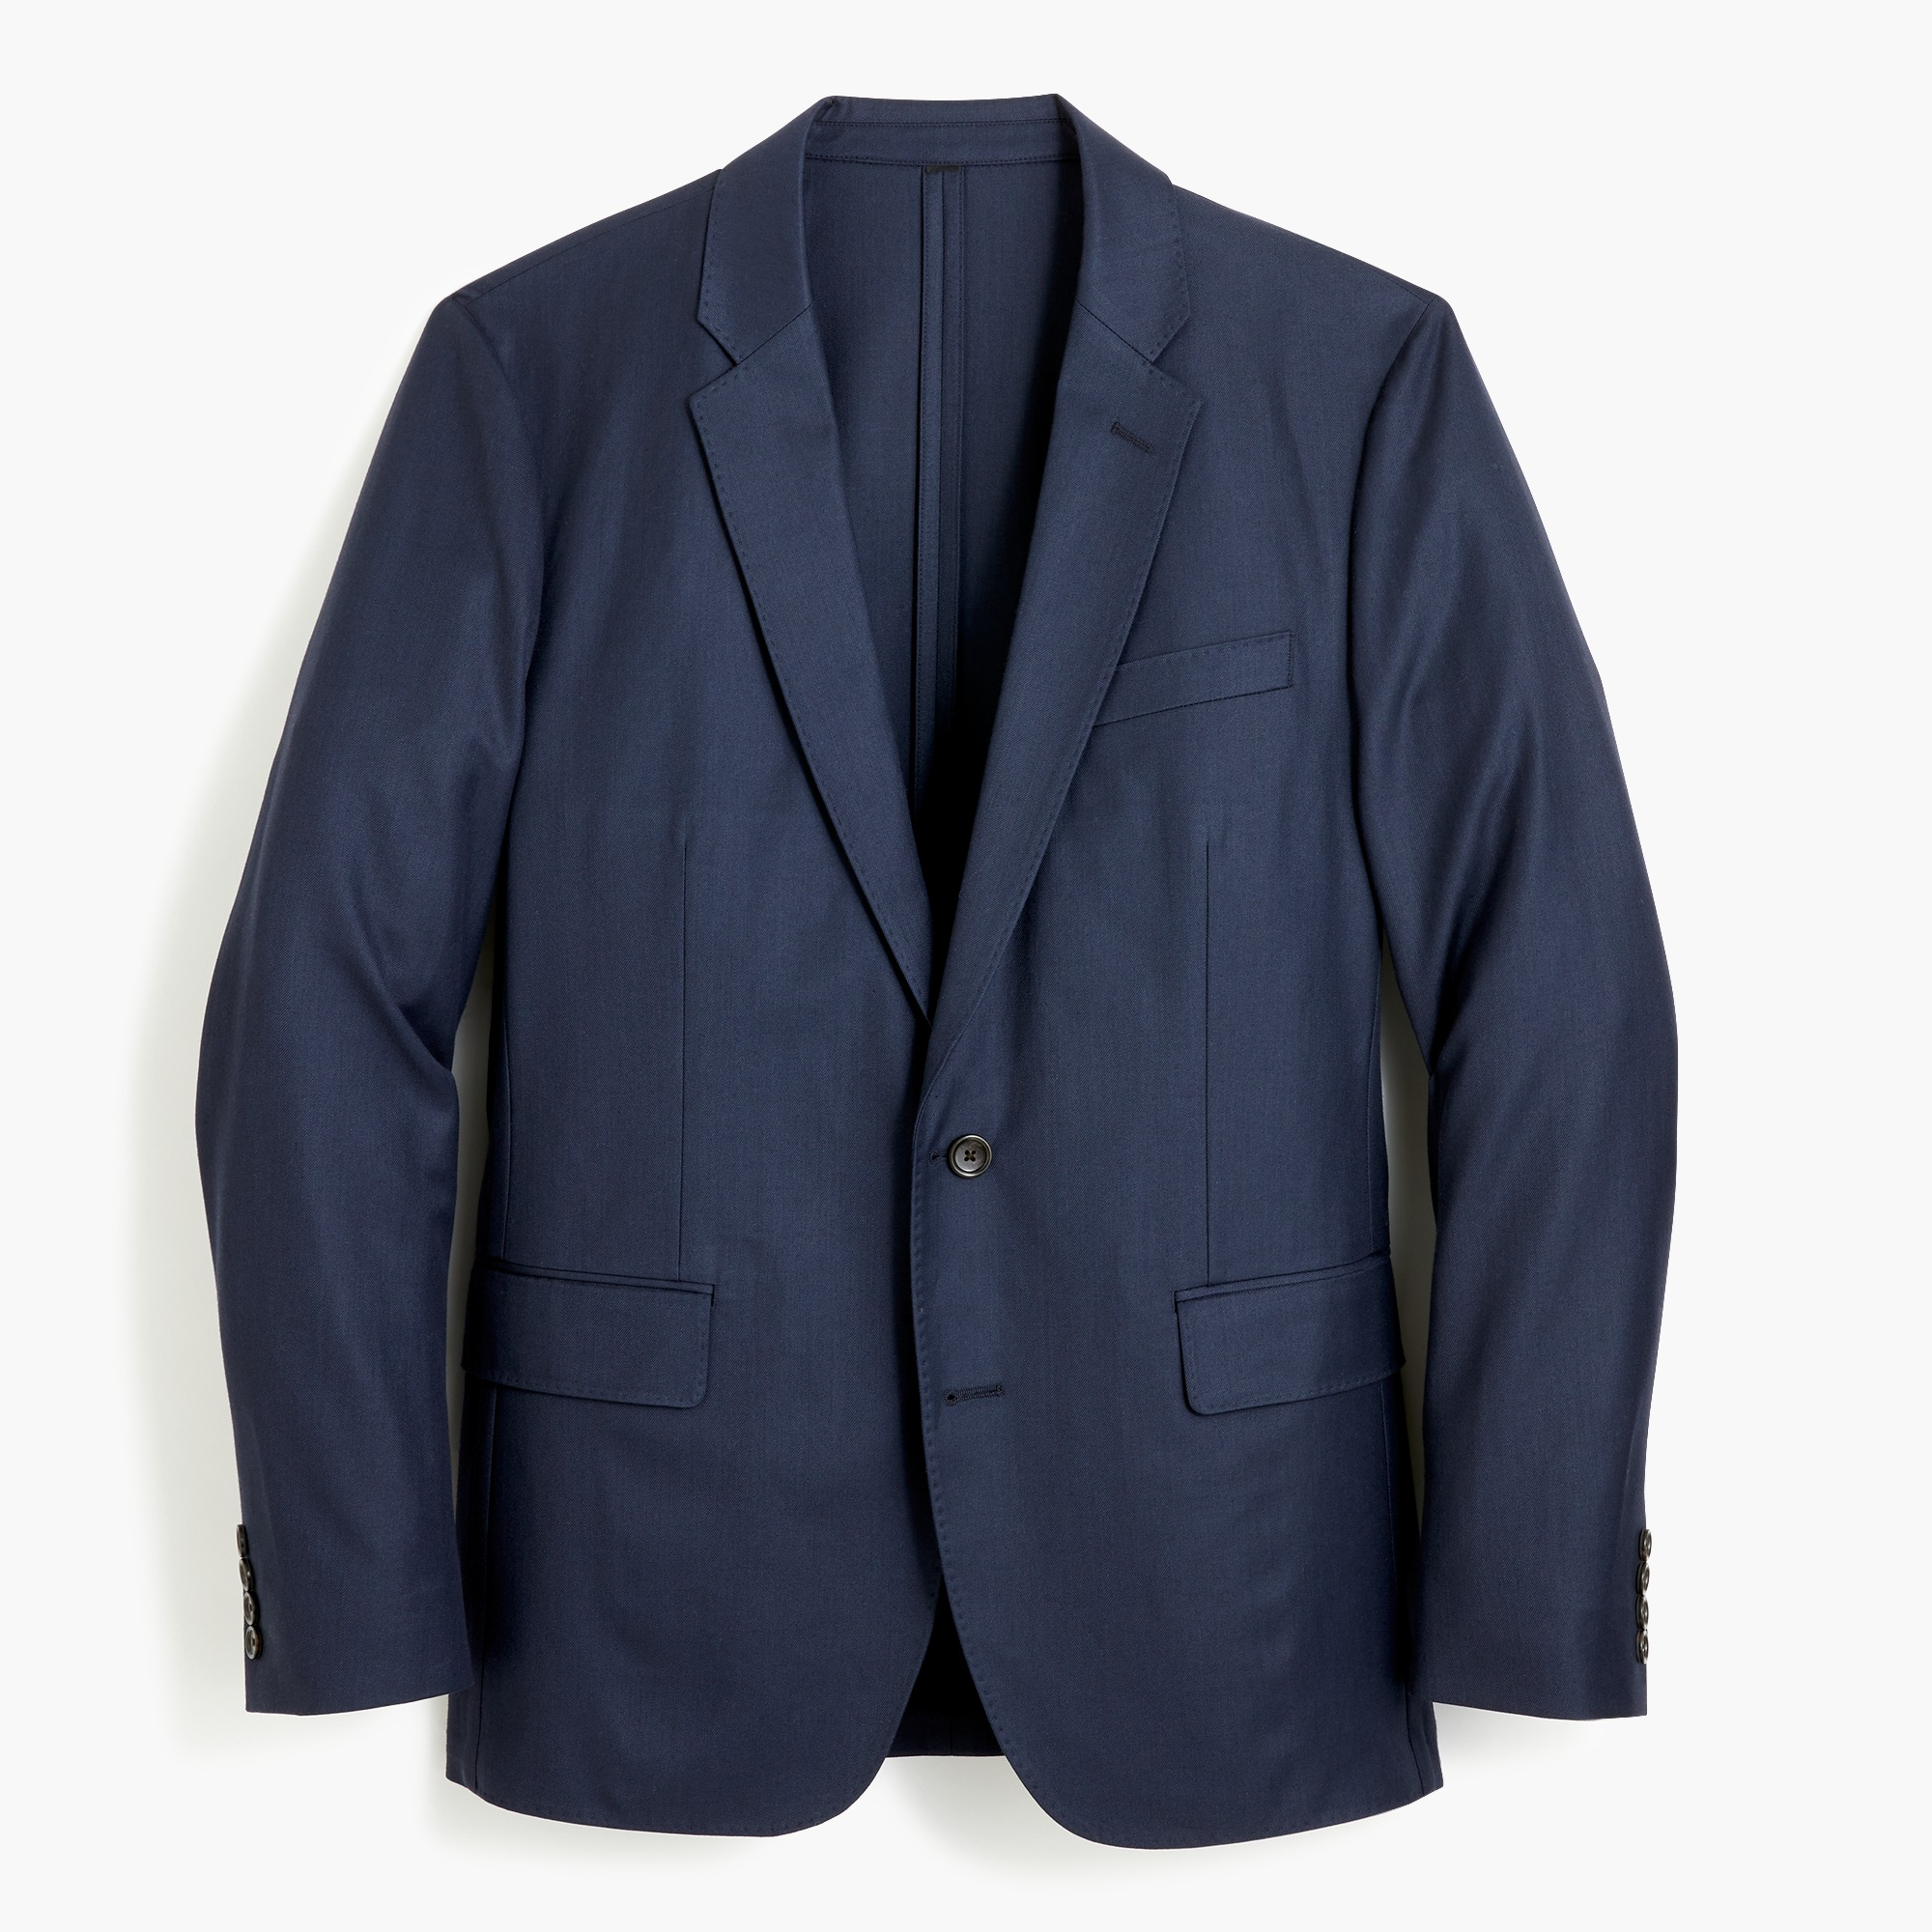 Image 2 for Ludlow Slim-fit unstructured blazer in American wool